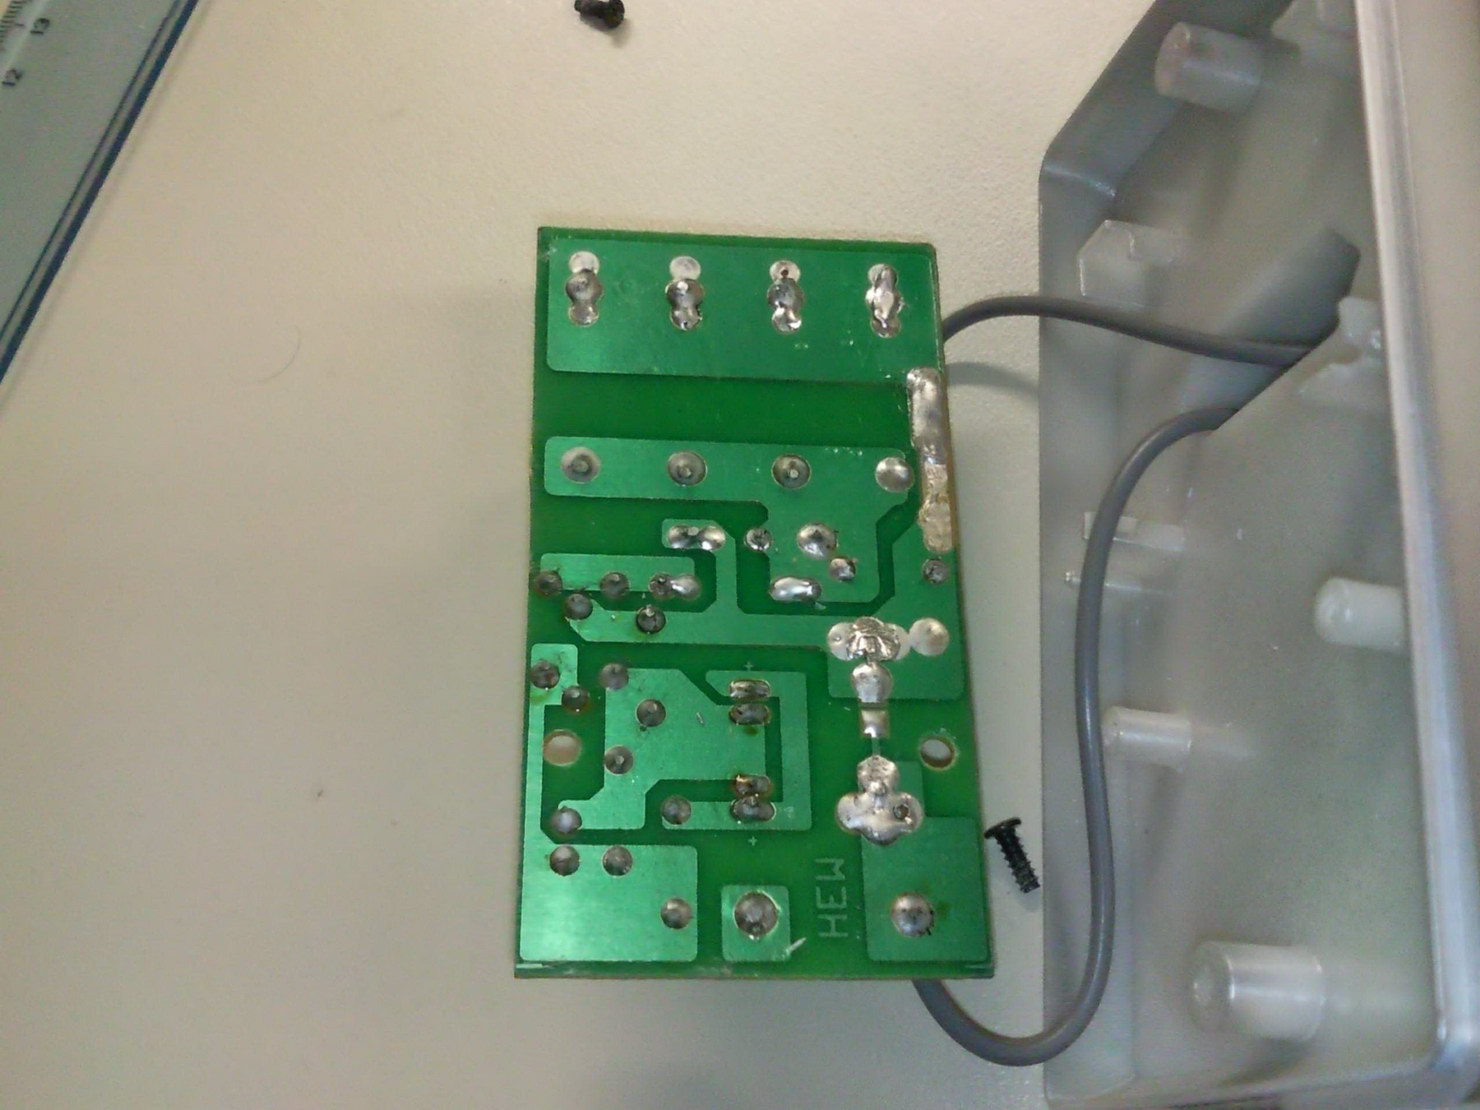 18kw Energy Power Saver Circuit Device Saving Your Electricity Bill